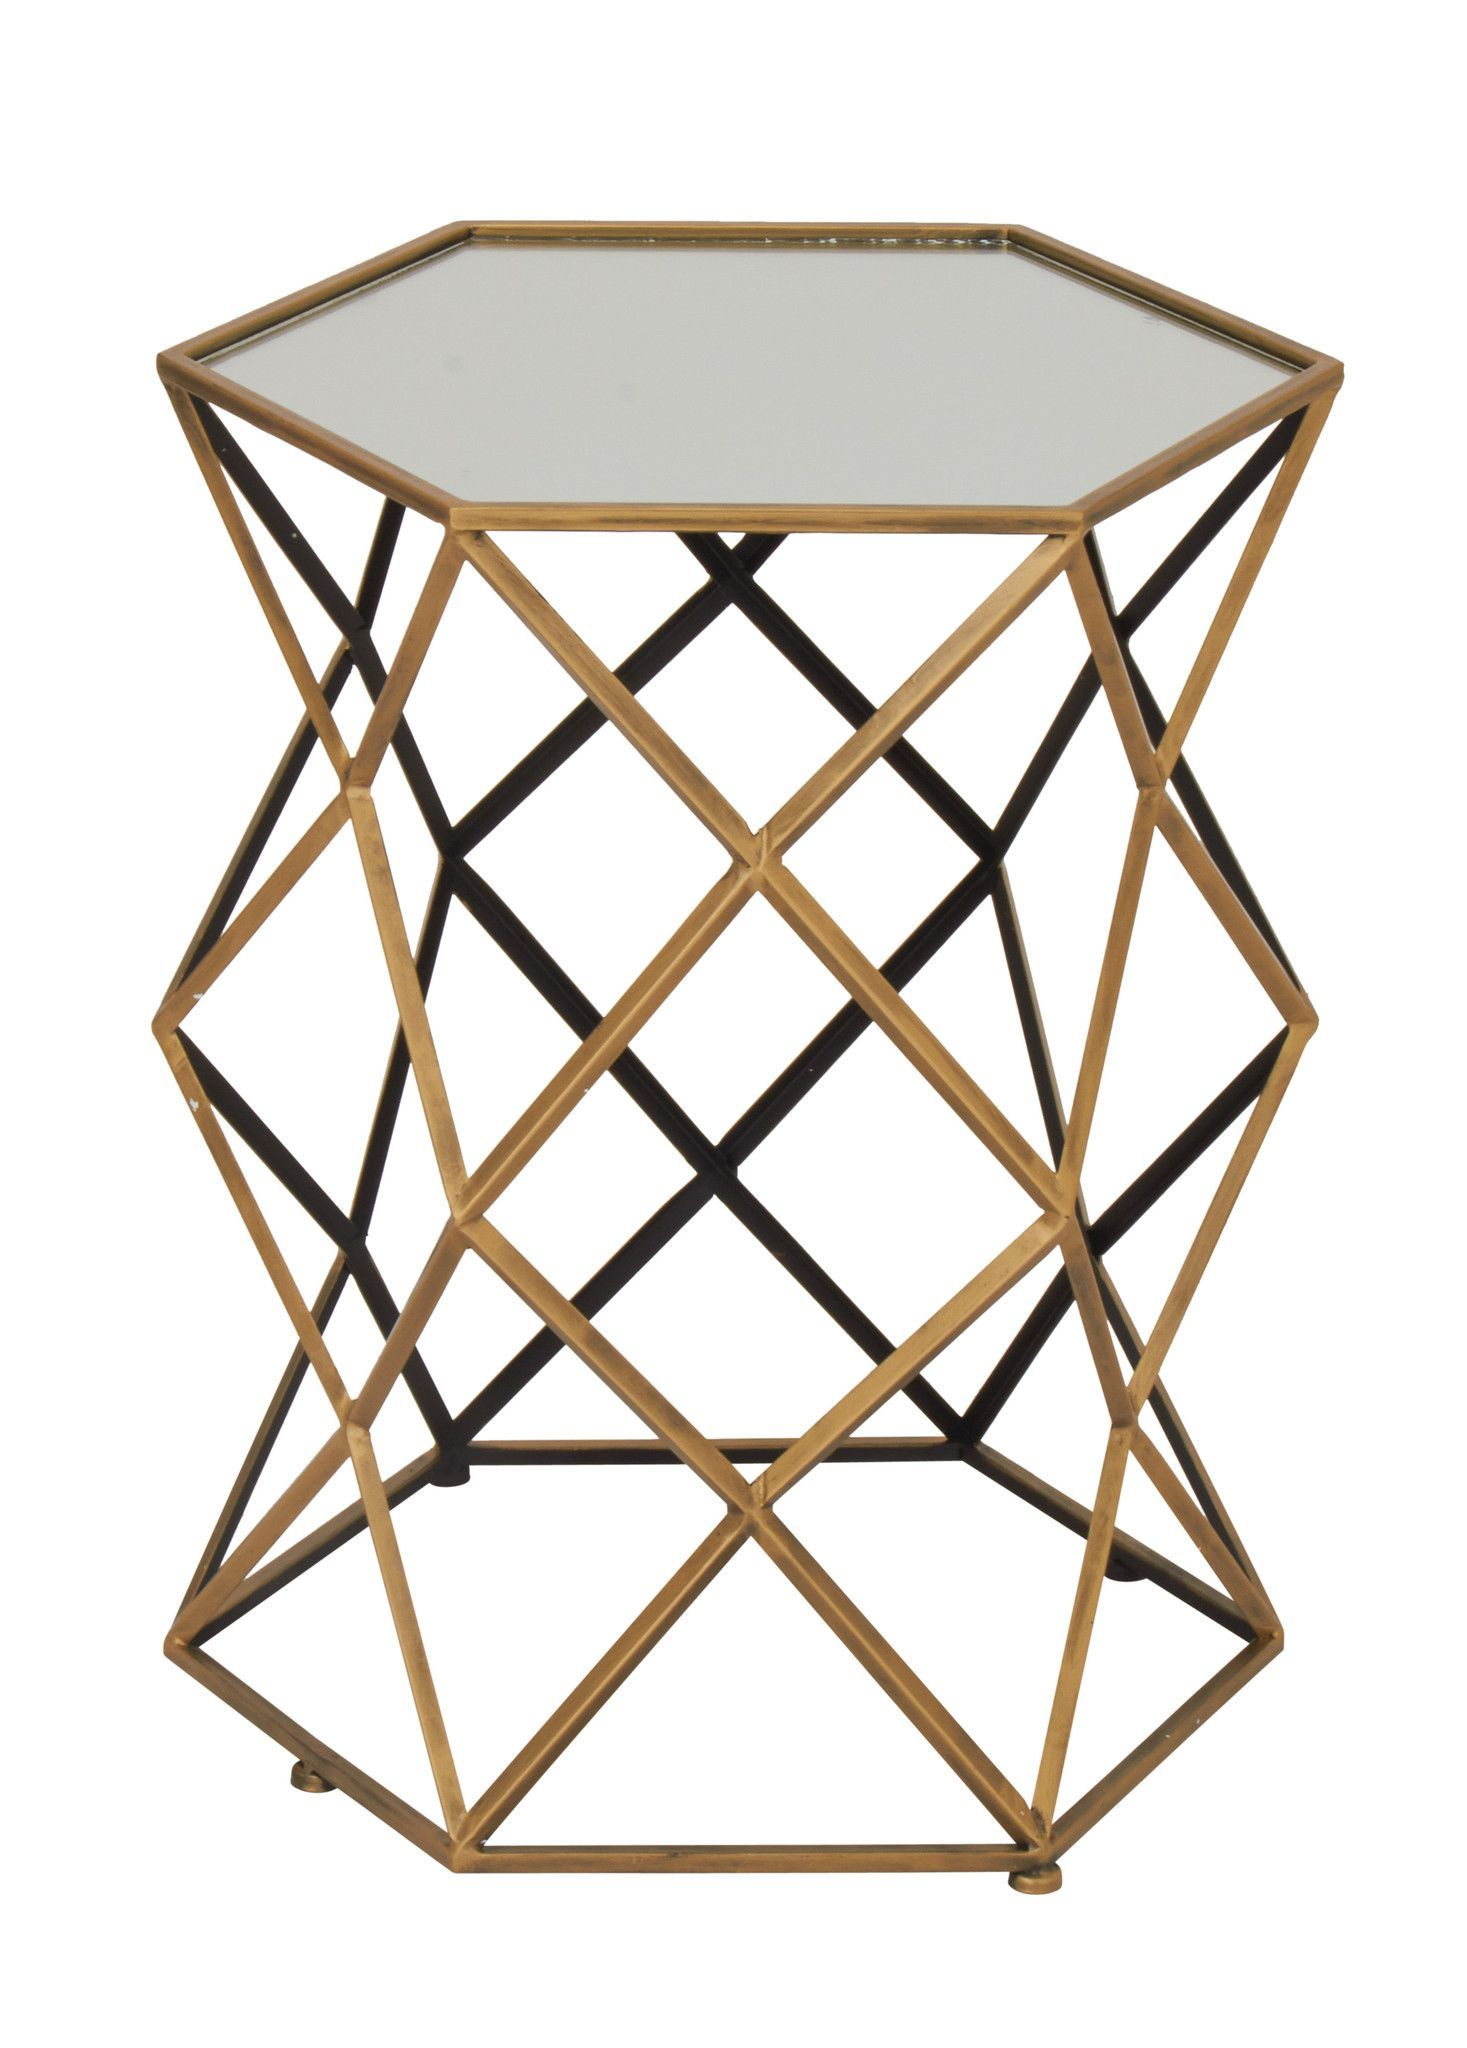 magnificent metal mirror accent table future tables with matching mirrors small square half moon entry nautical track lighting pedestal dining room patio legs looking for coffee